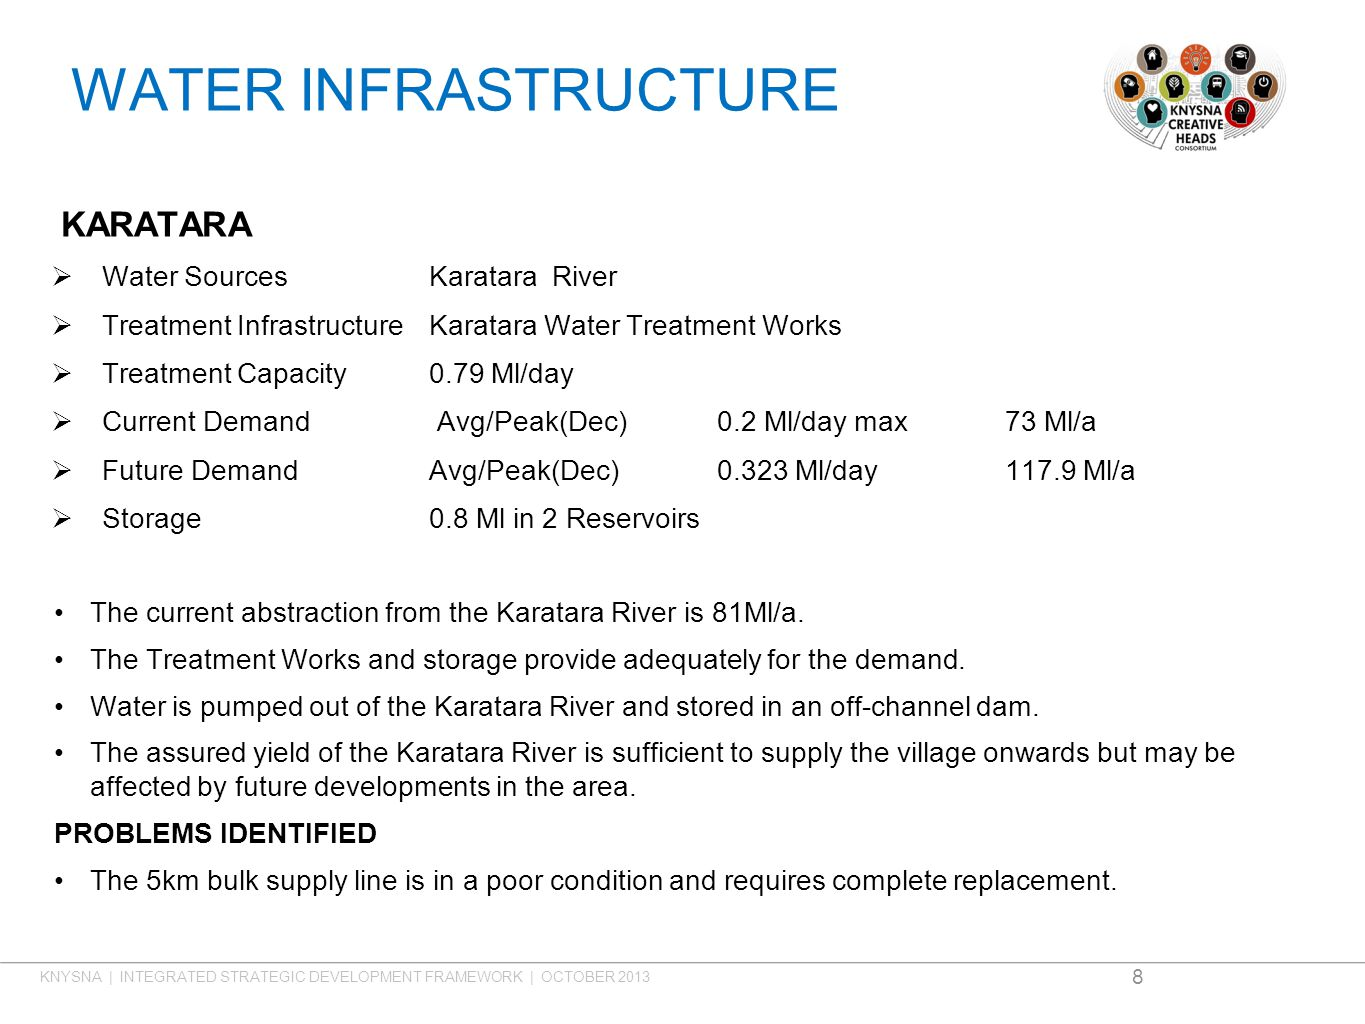 WATER INFRASTRUCTURE KARATARA  Water SourcesKaratara River  Treatment InfrastructureKaratara Water Treatment Works  Treatment Capacity0.79 Ml/day  Current Demand Avg/Peak(Dec) 0.2 Ml/day max73 Ml/a  Future DemandAvg/Peak(Dec)0.323 Ml/day117.9 Ml/a  Storage0.8 Ml in 2 Reservoirs The current abstraction from the Karatara River is 81Ml/a.